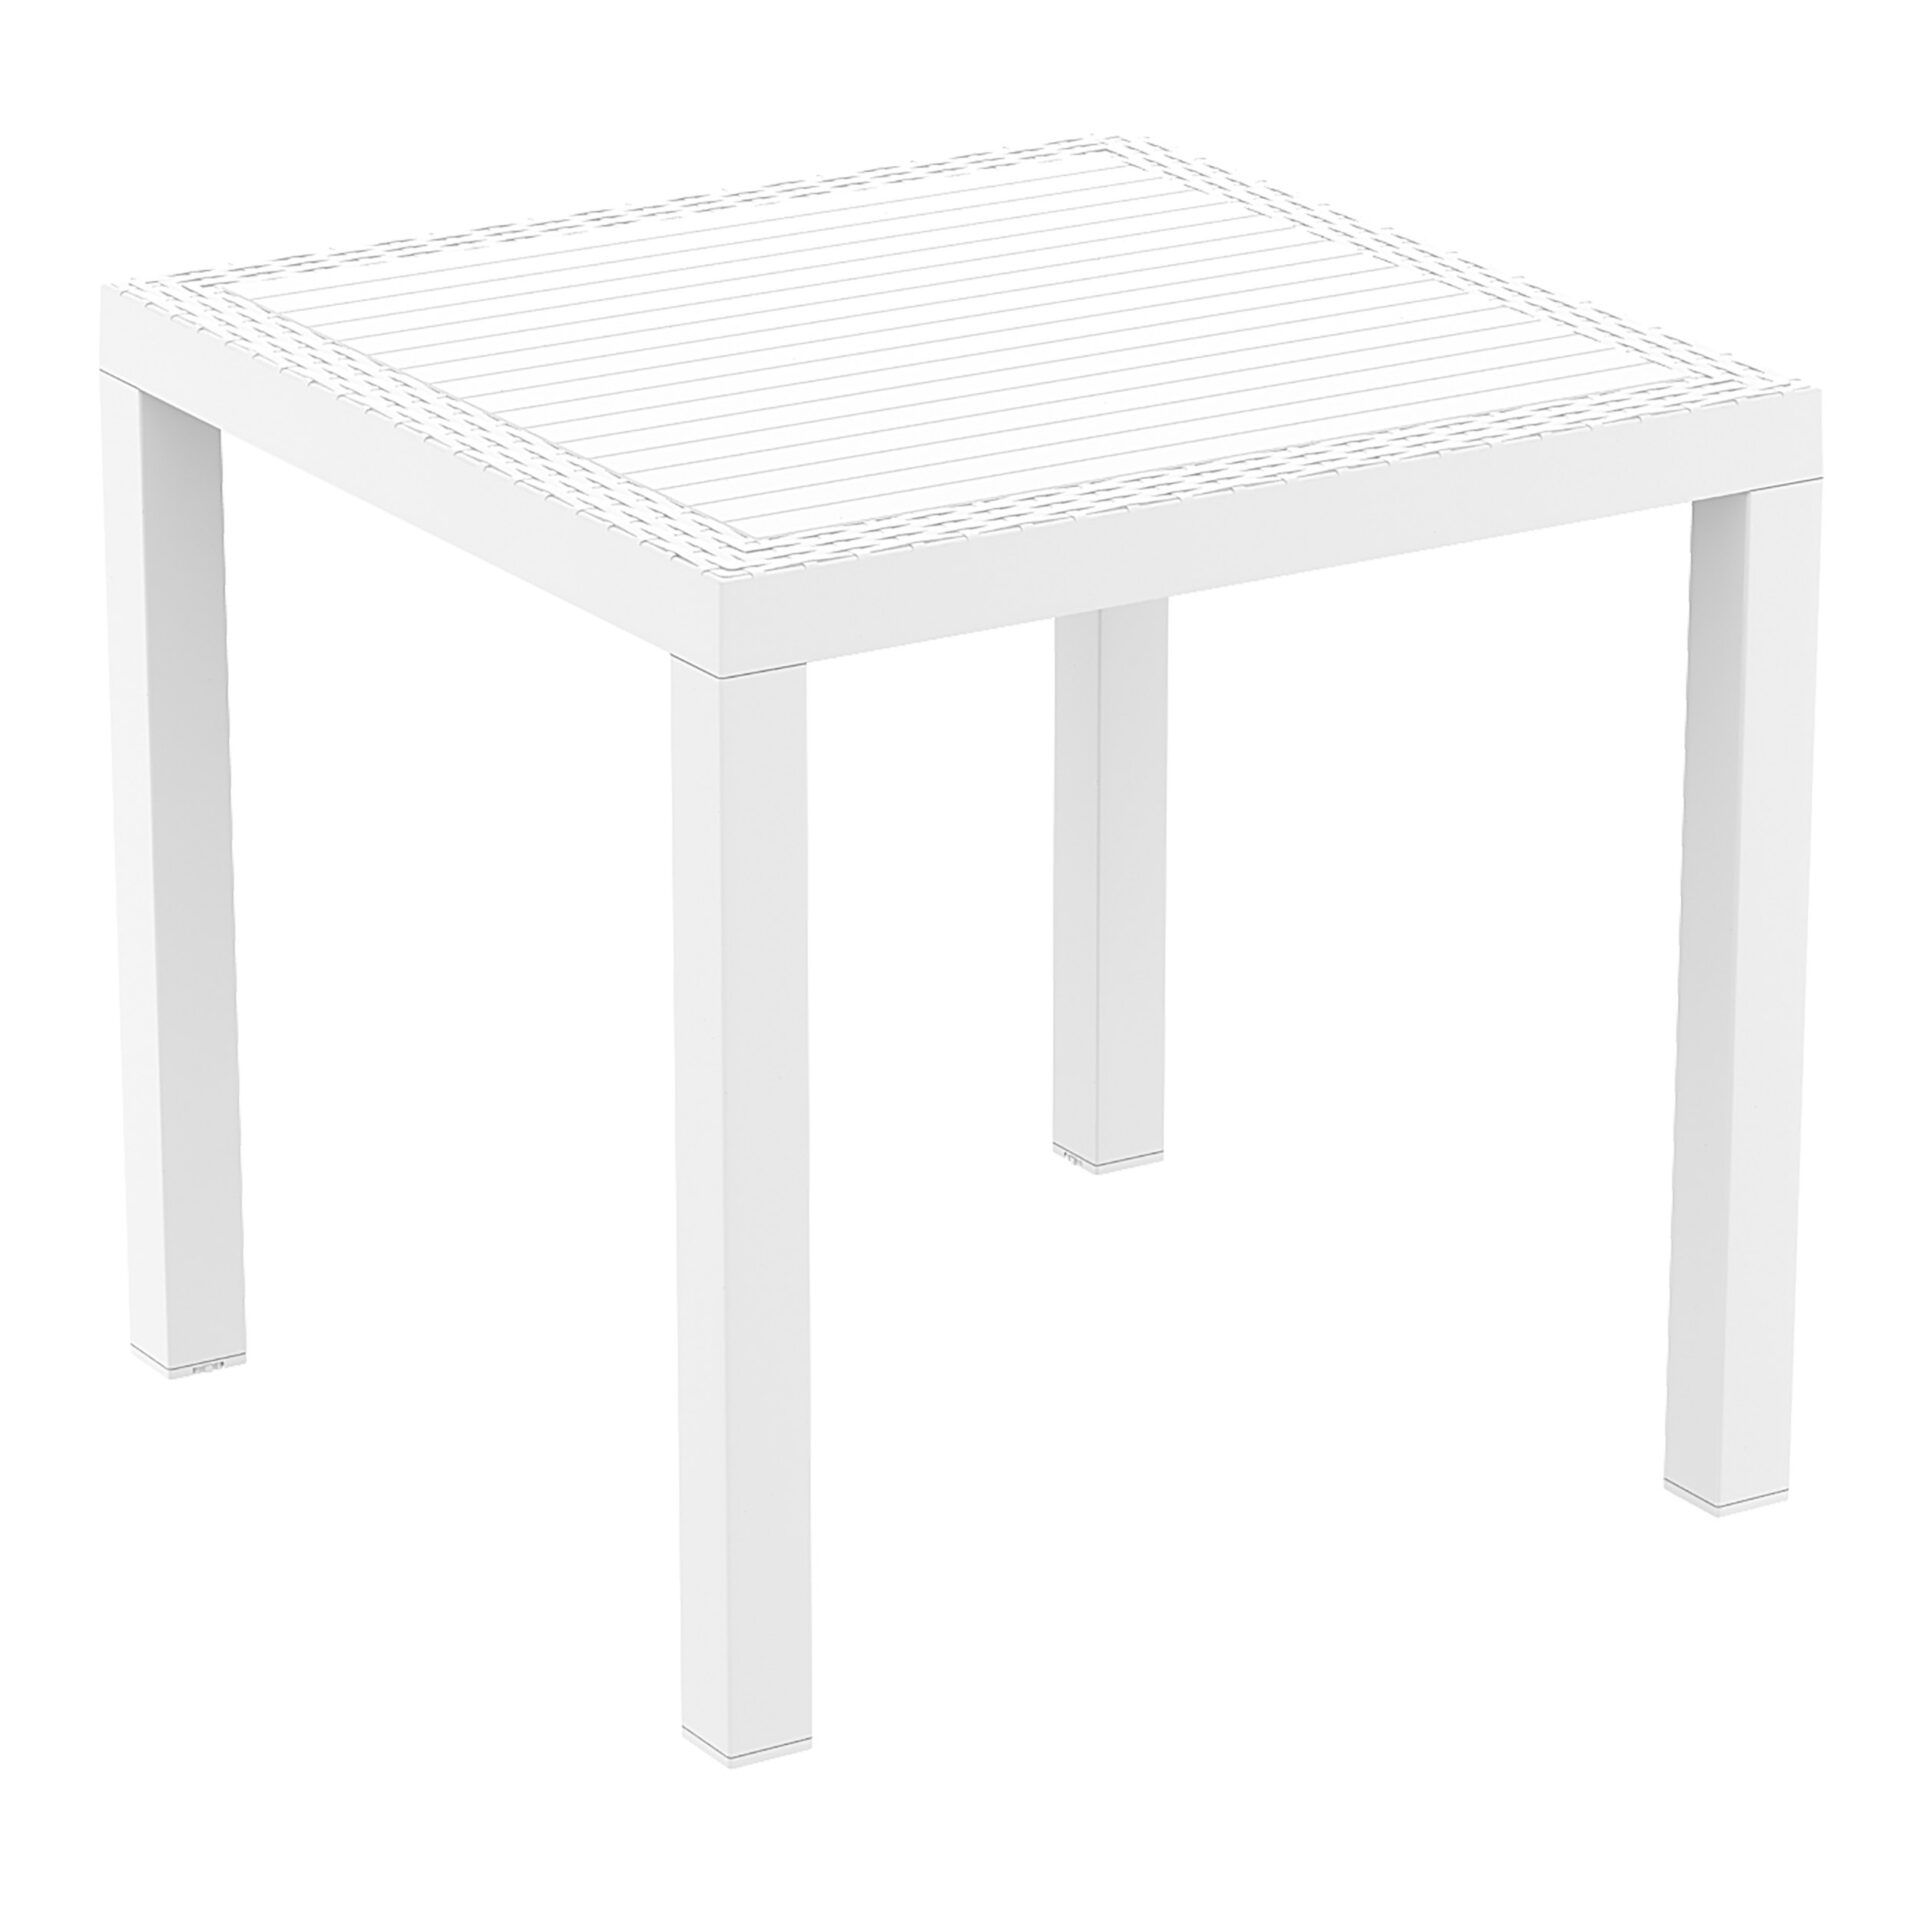 outdoor resin rattan cafe plastic top bali table 80 white front side